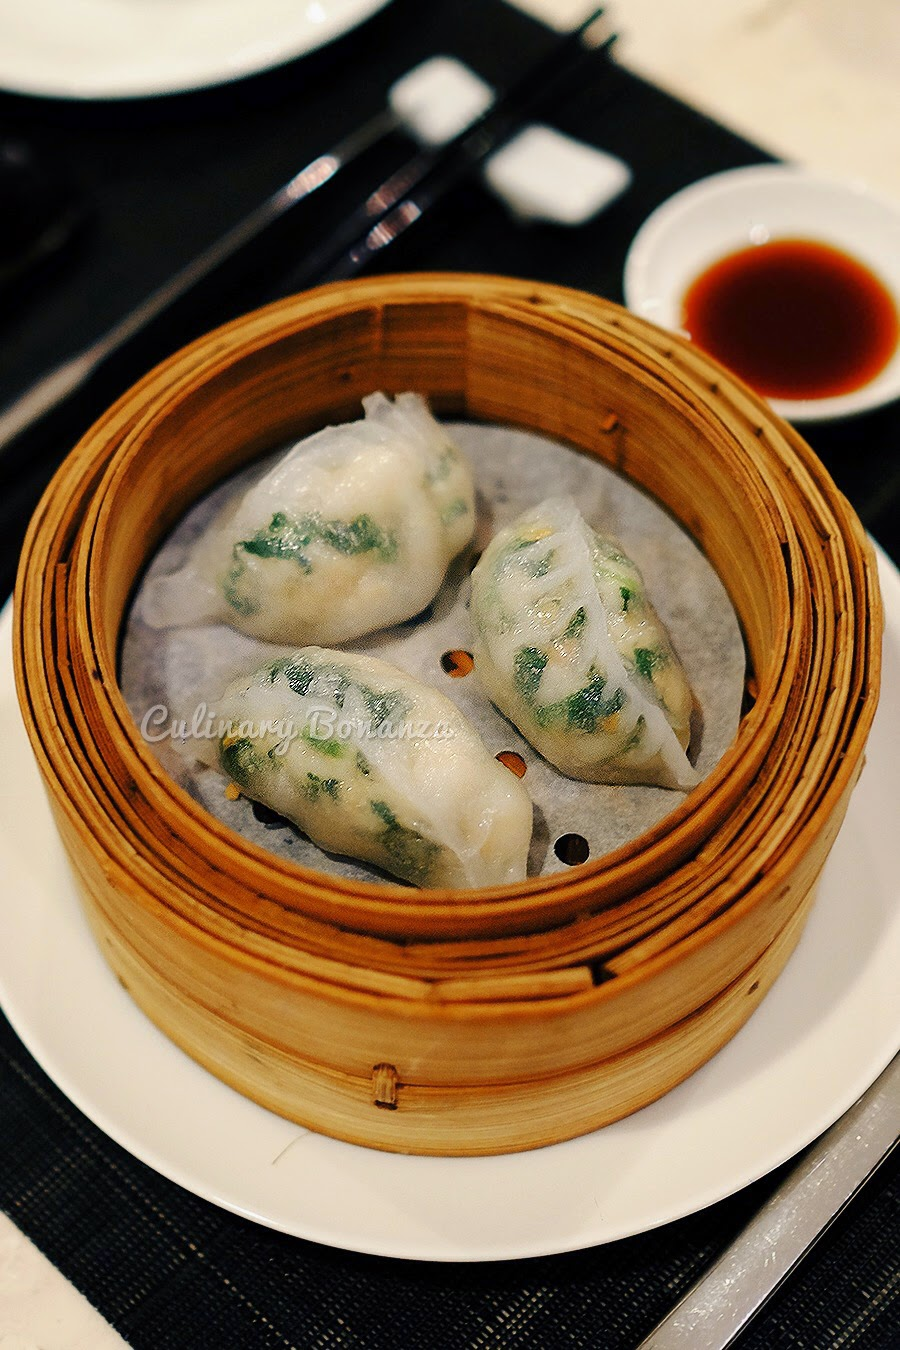 Steamed dumpling with po cai filling